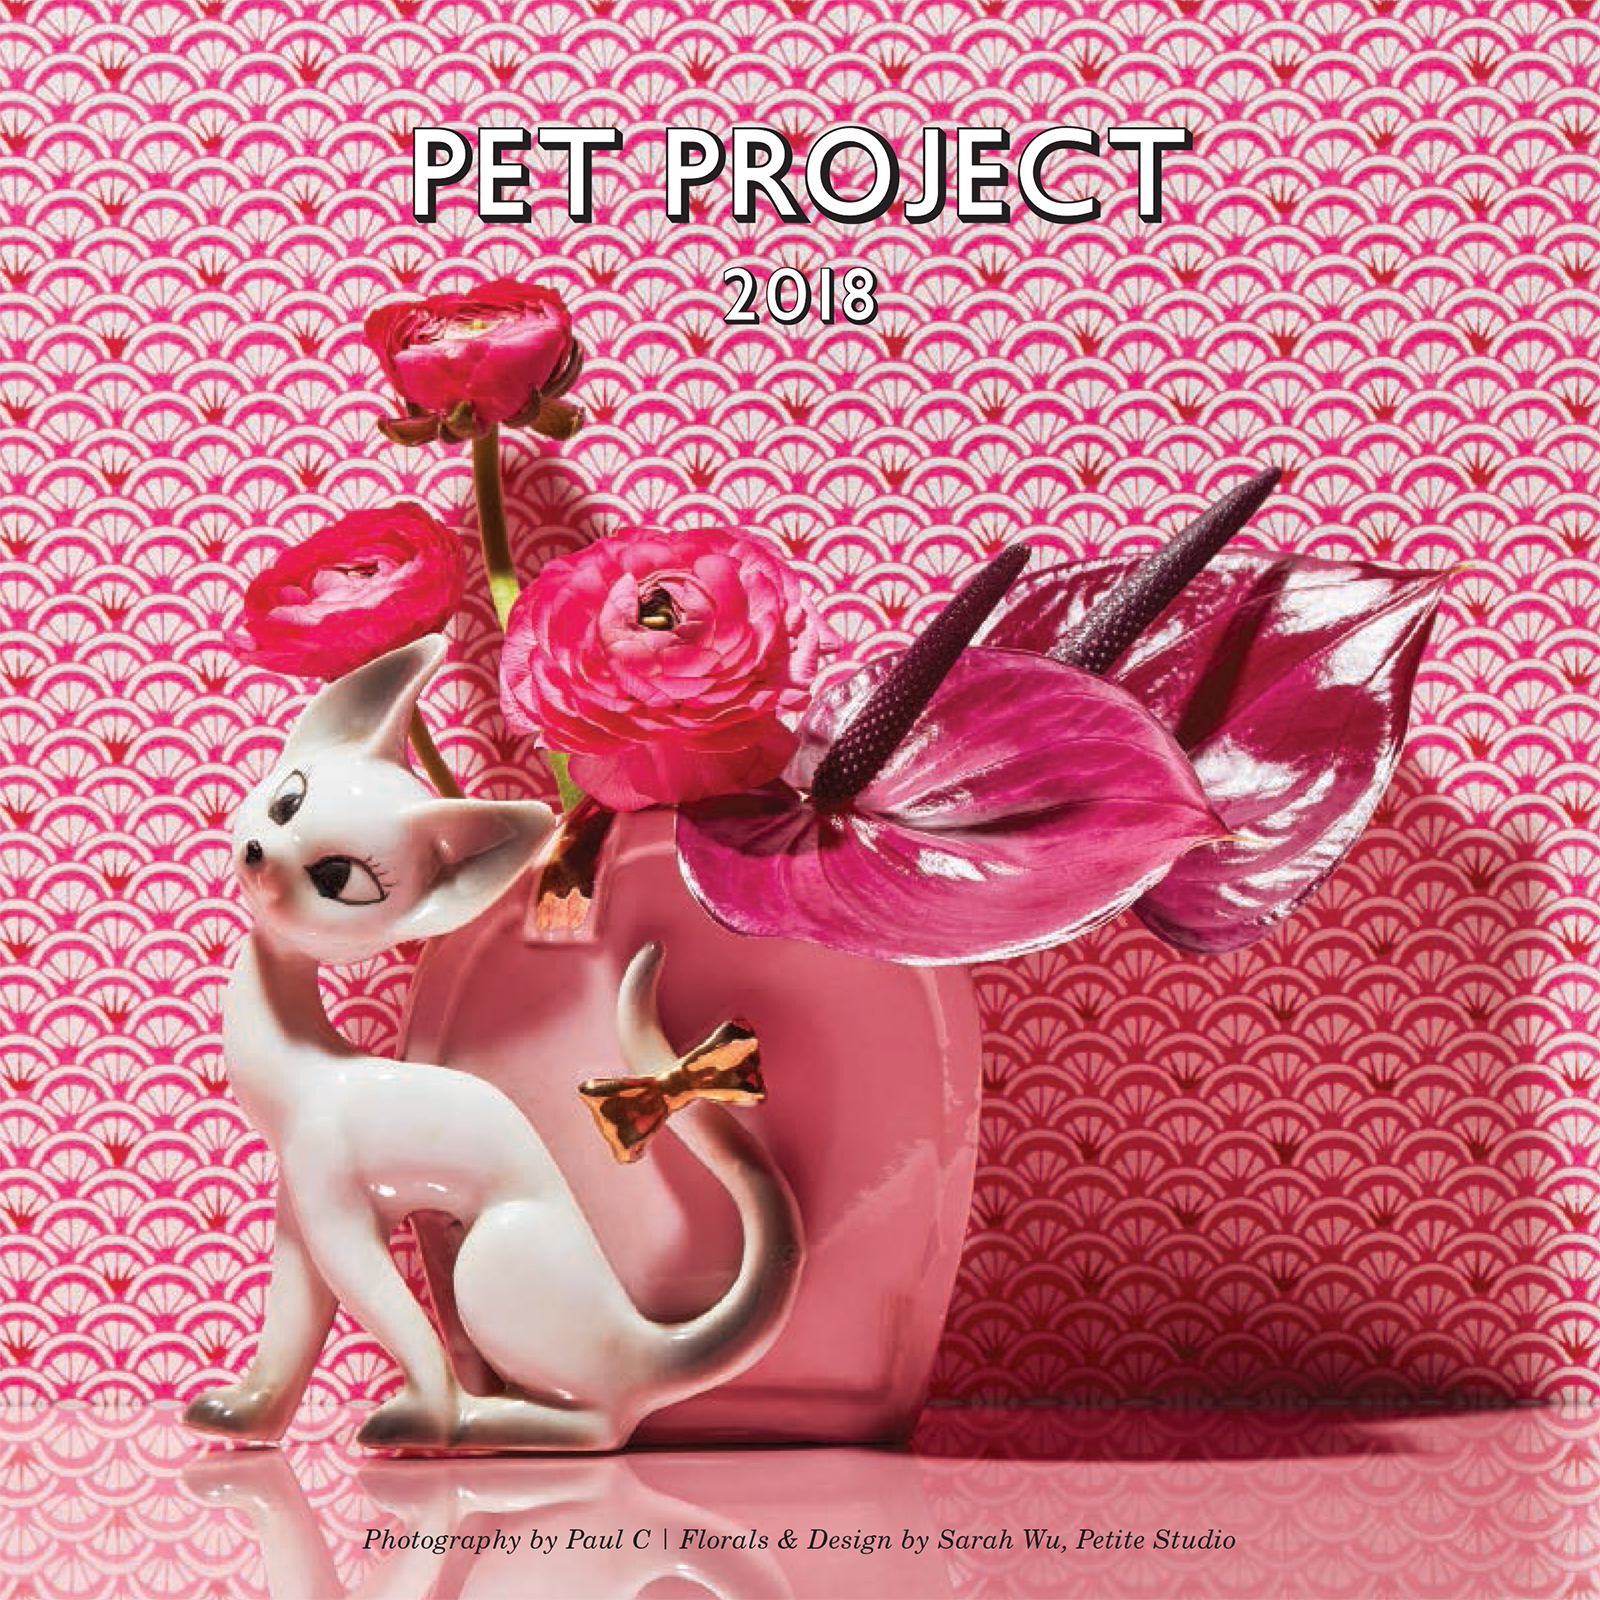 Pet Project.  Calendar design collaboration with Paul C, 2018